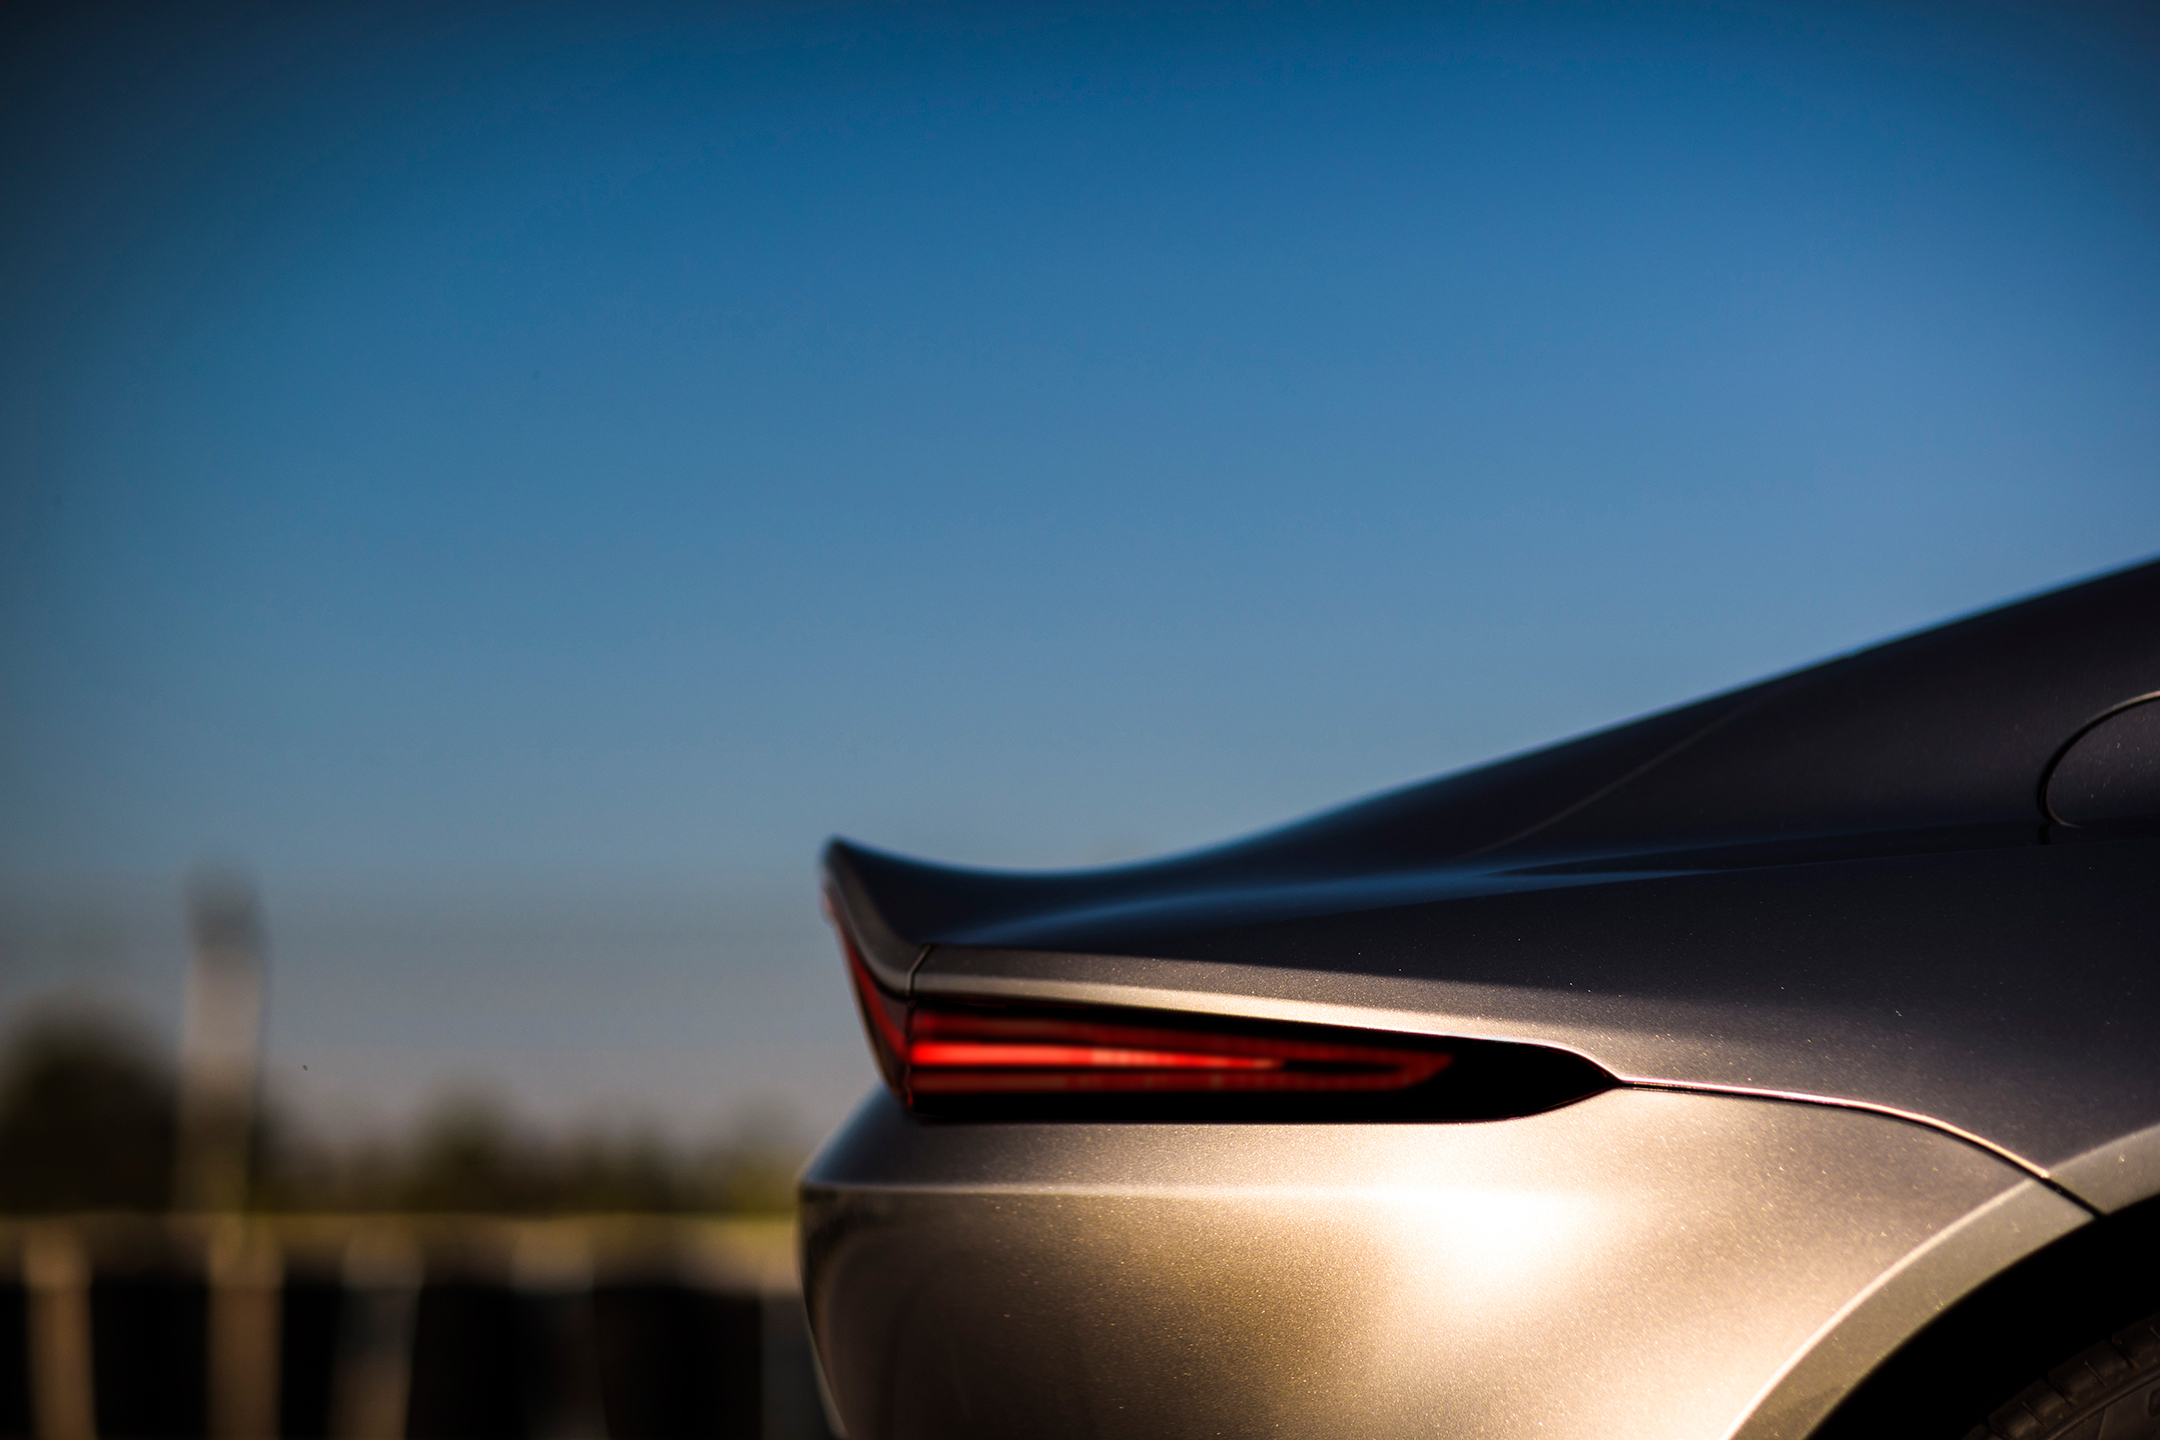 Aston Martin Vantage - 2018 - rear light side view